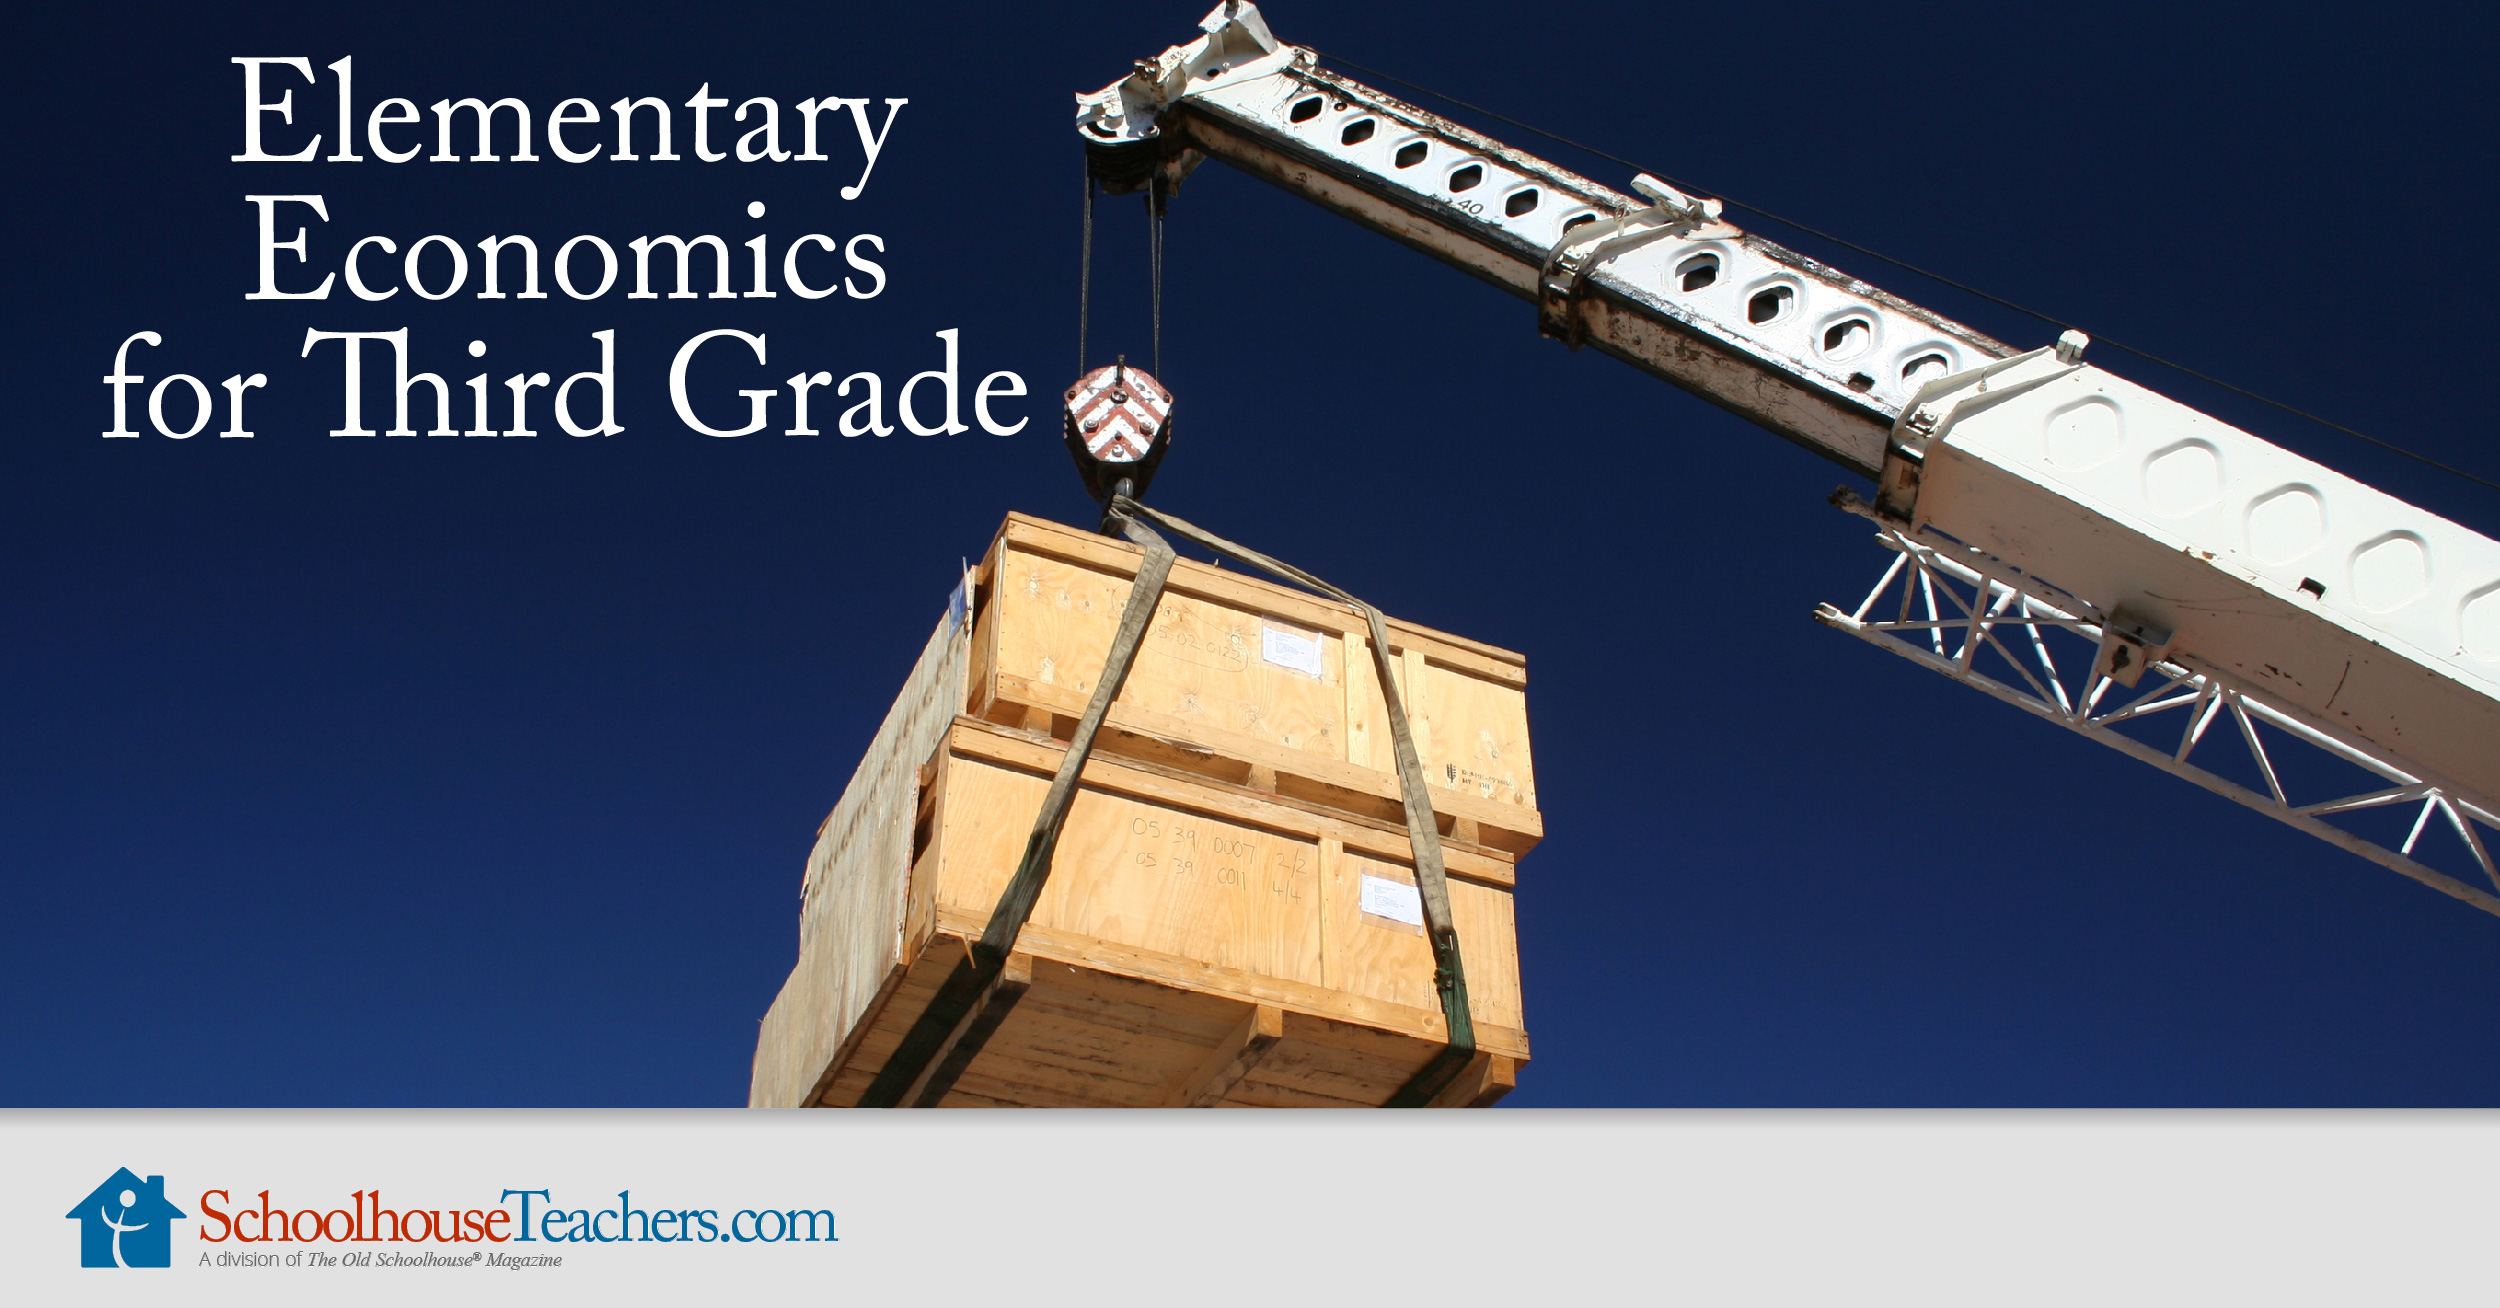 Elementary Economics For Third Grade Homeschool Course